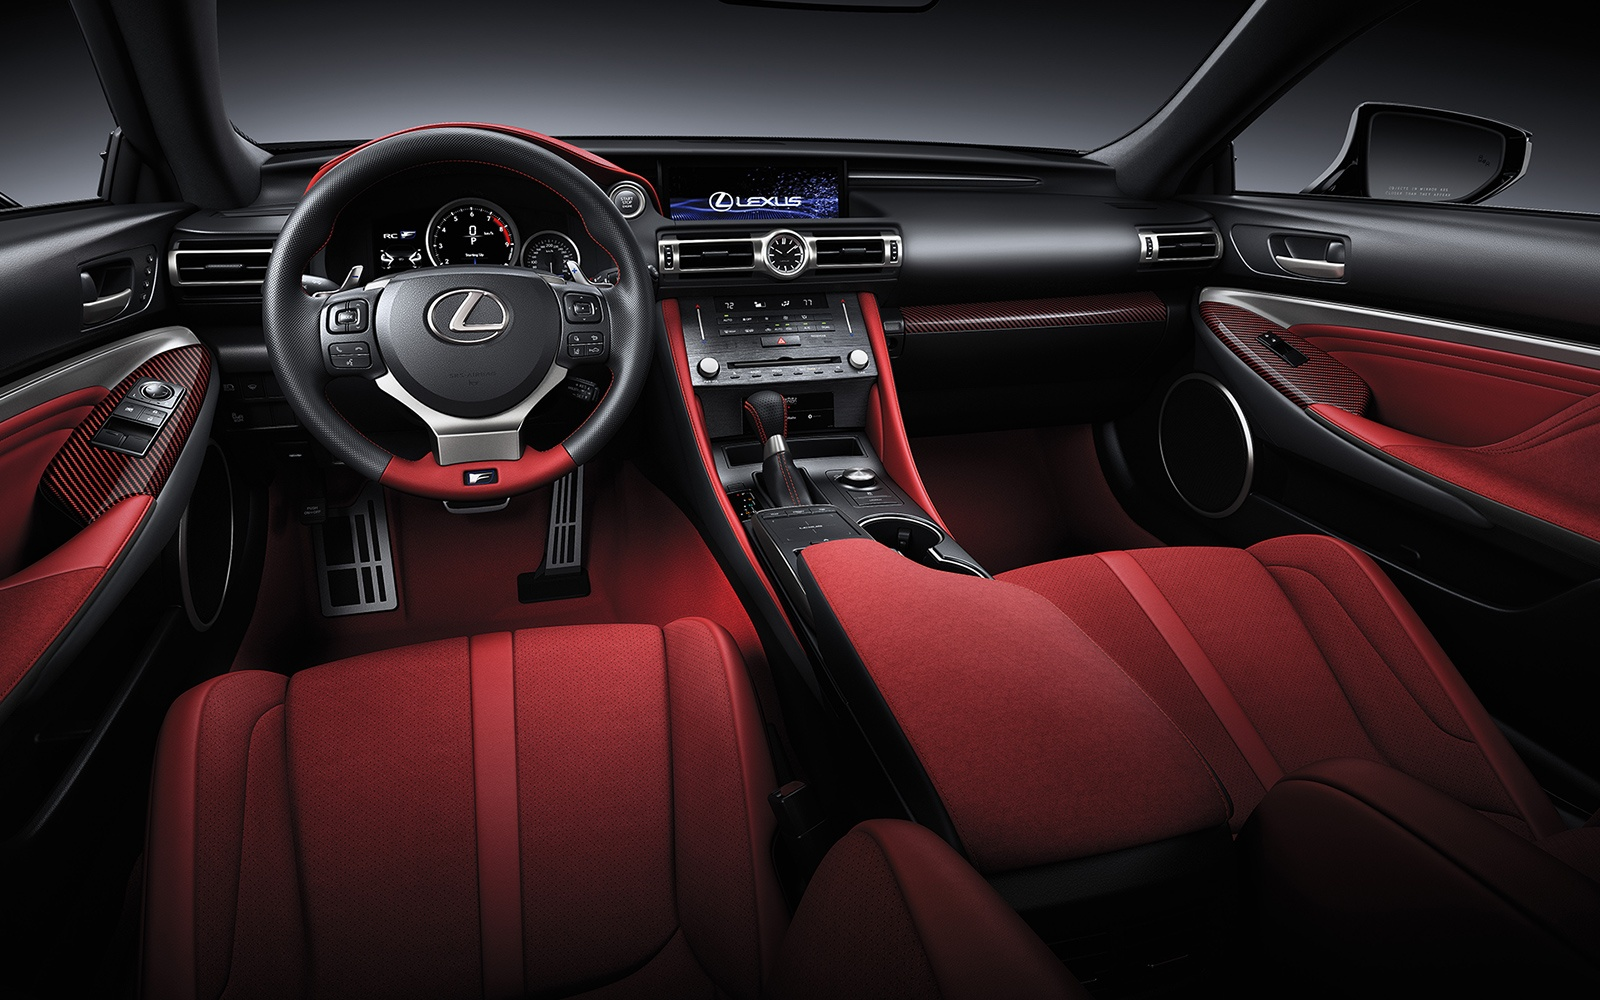 2020 Lexus RC Interior at Ken Shaw Lexus in Toronto